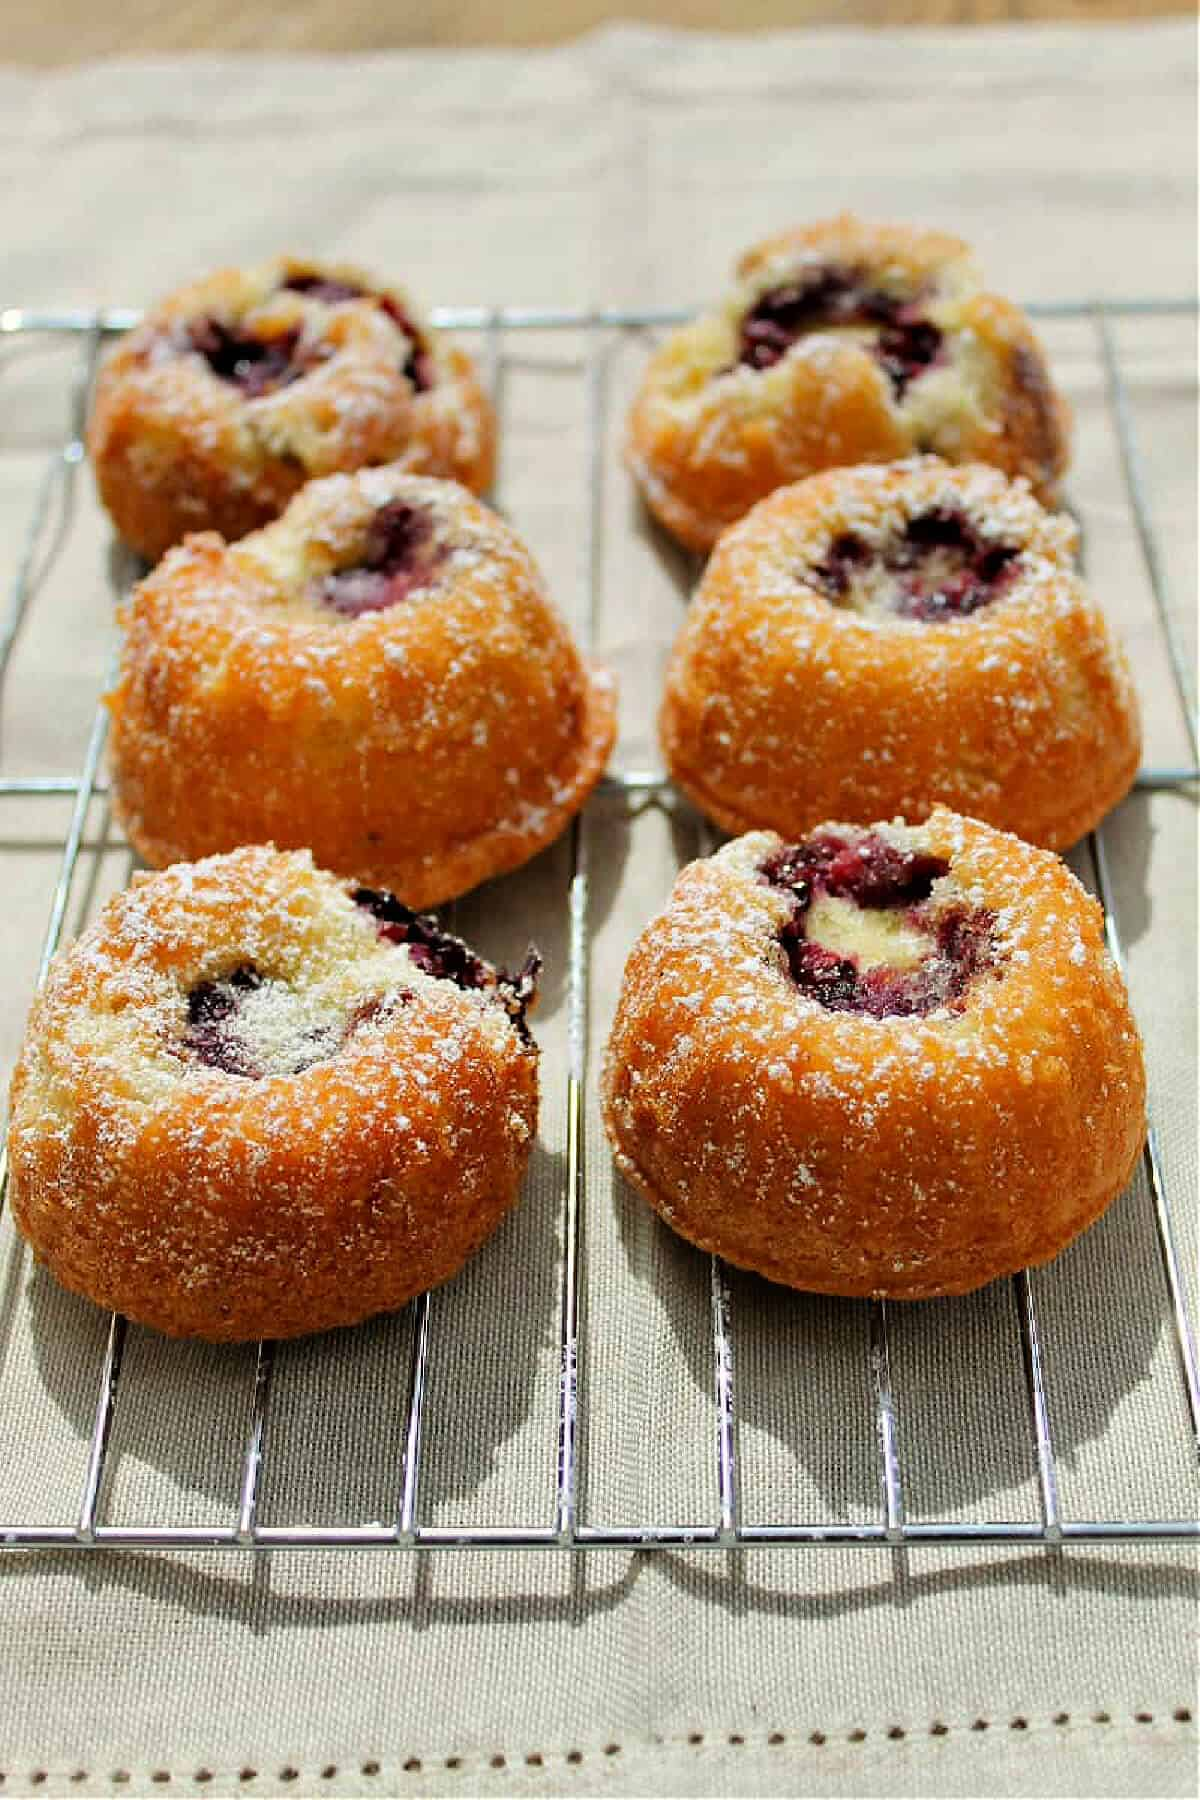 Six small cakes with blackberry filling on a metal cooling rack.